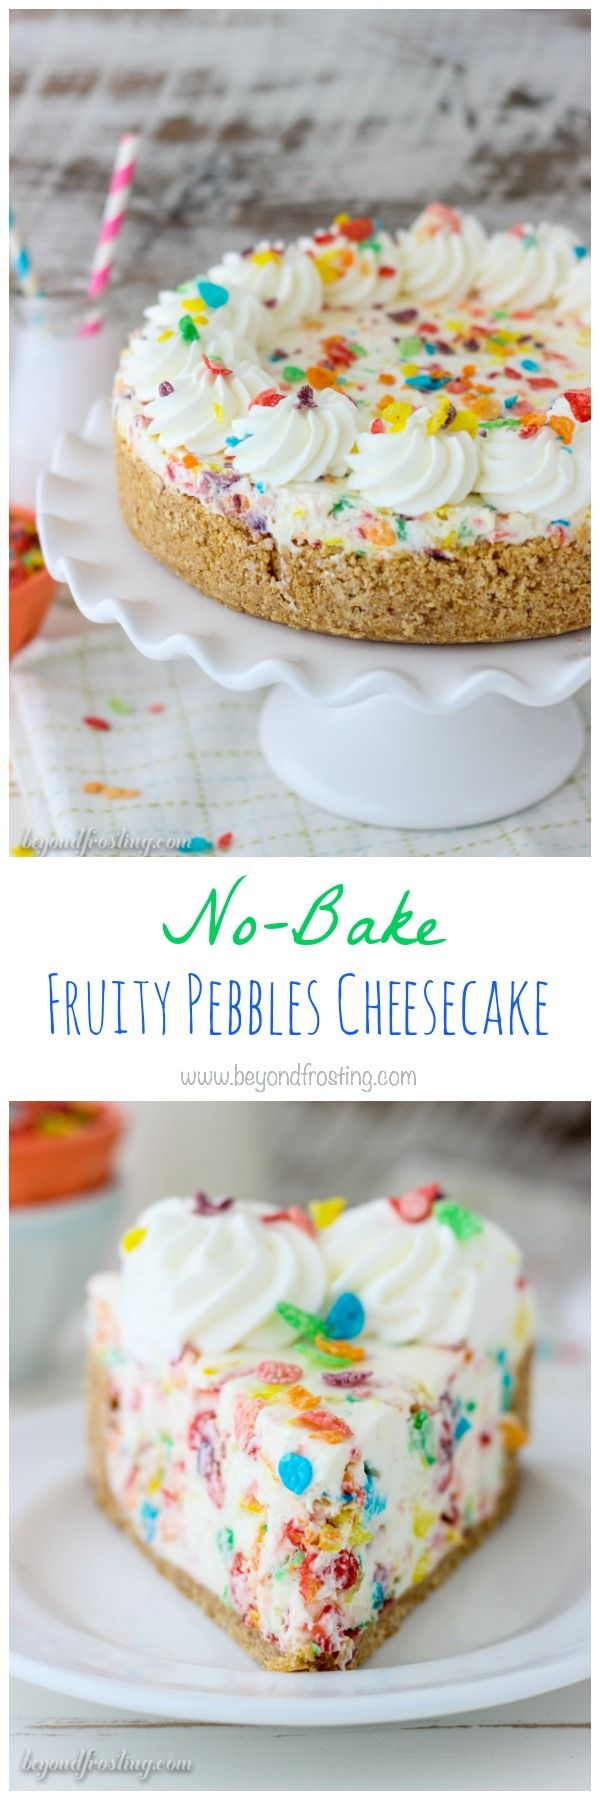 You'll love the fruity flavors in this No-Bake Fruity Pebbles Cheesecake! The no-bake cheesecake filling is loaded with Fruity Pebbles on a Nilla Wafer crust. This recipe is quick, easy and delicious!